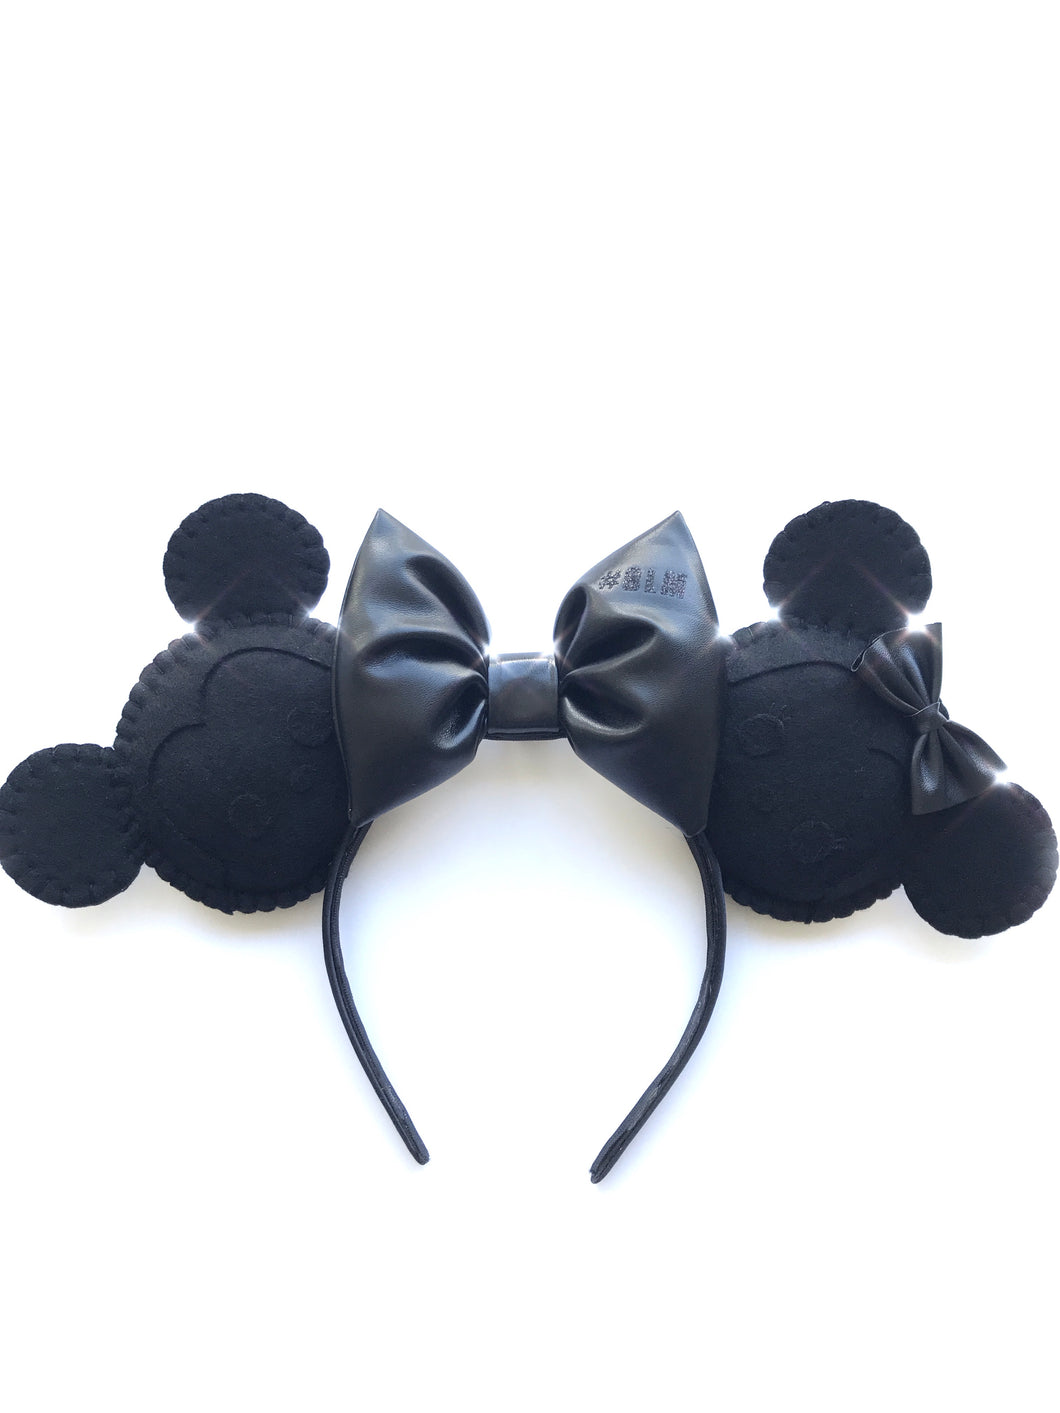 N8: PREORDER BLACK MICKEY